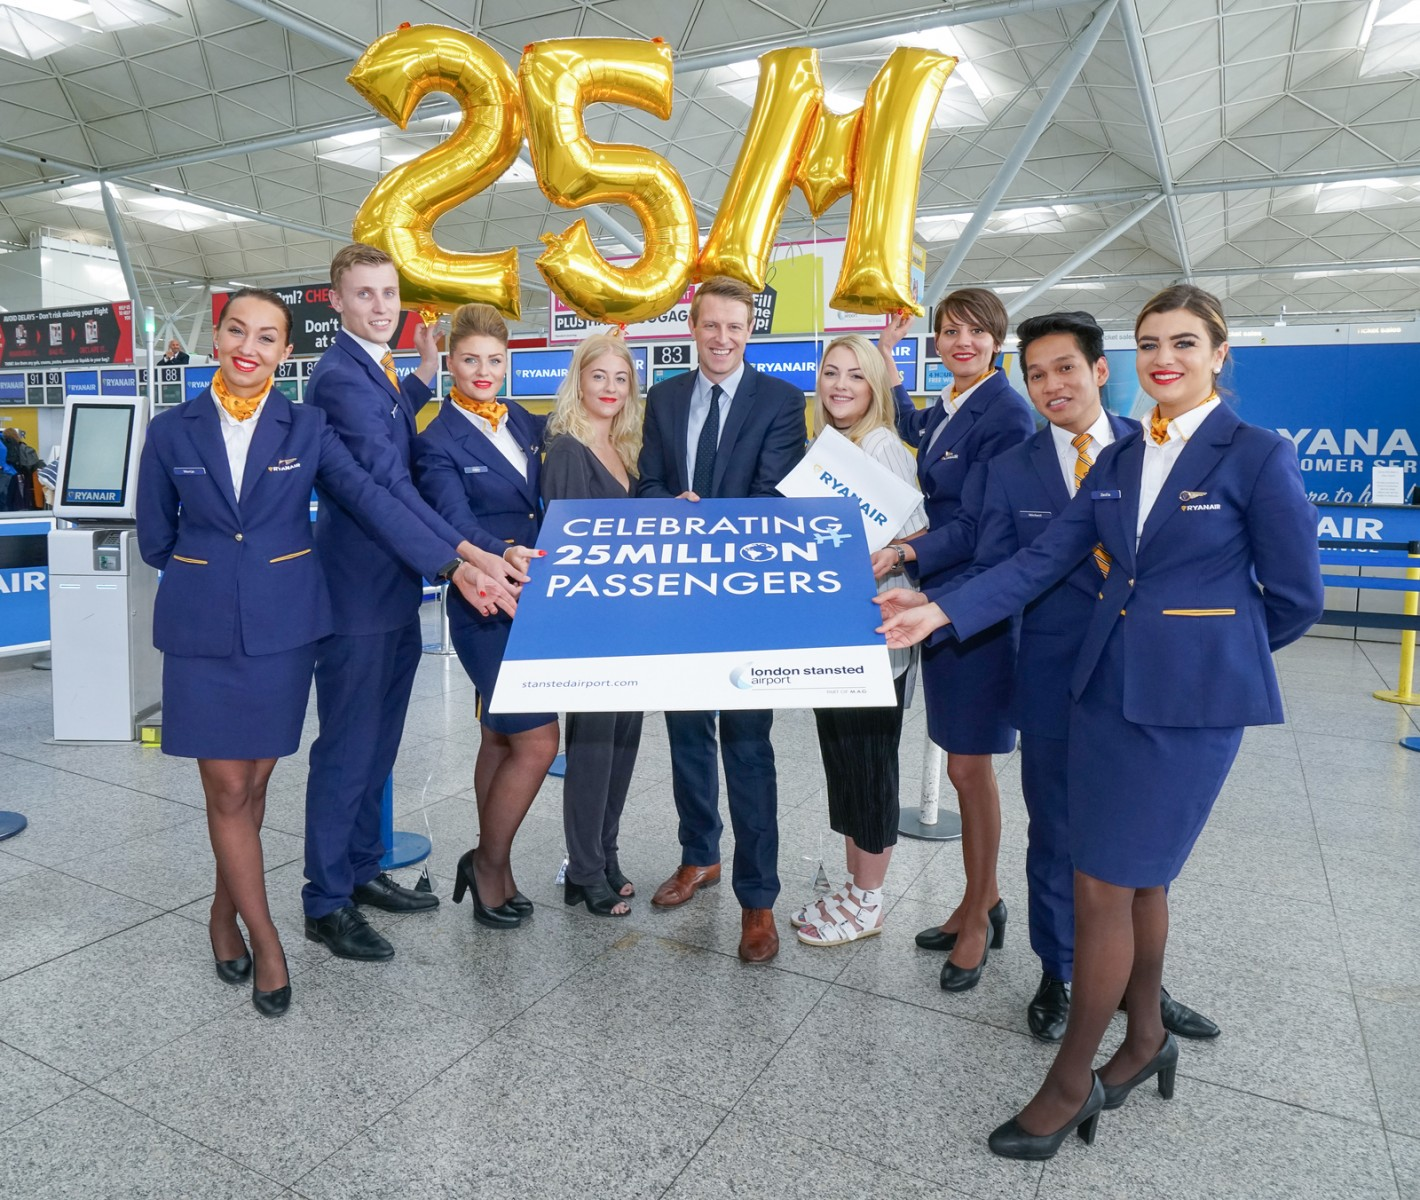 London Stansted Celebrates 25 Million Passengers By Surprising Two